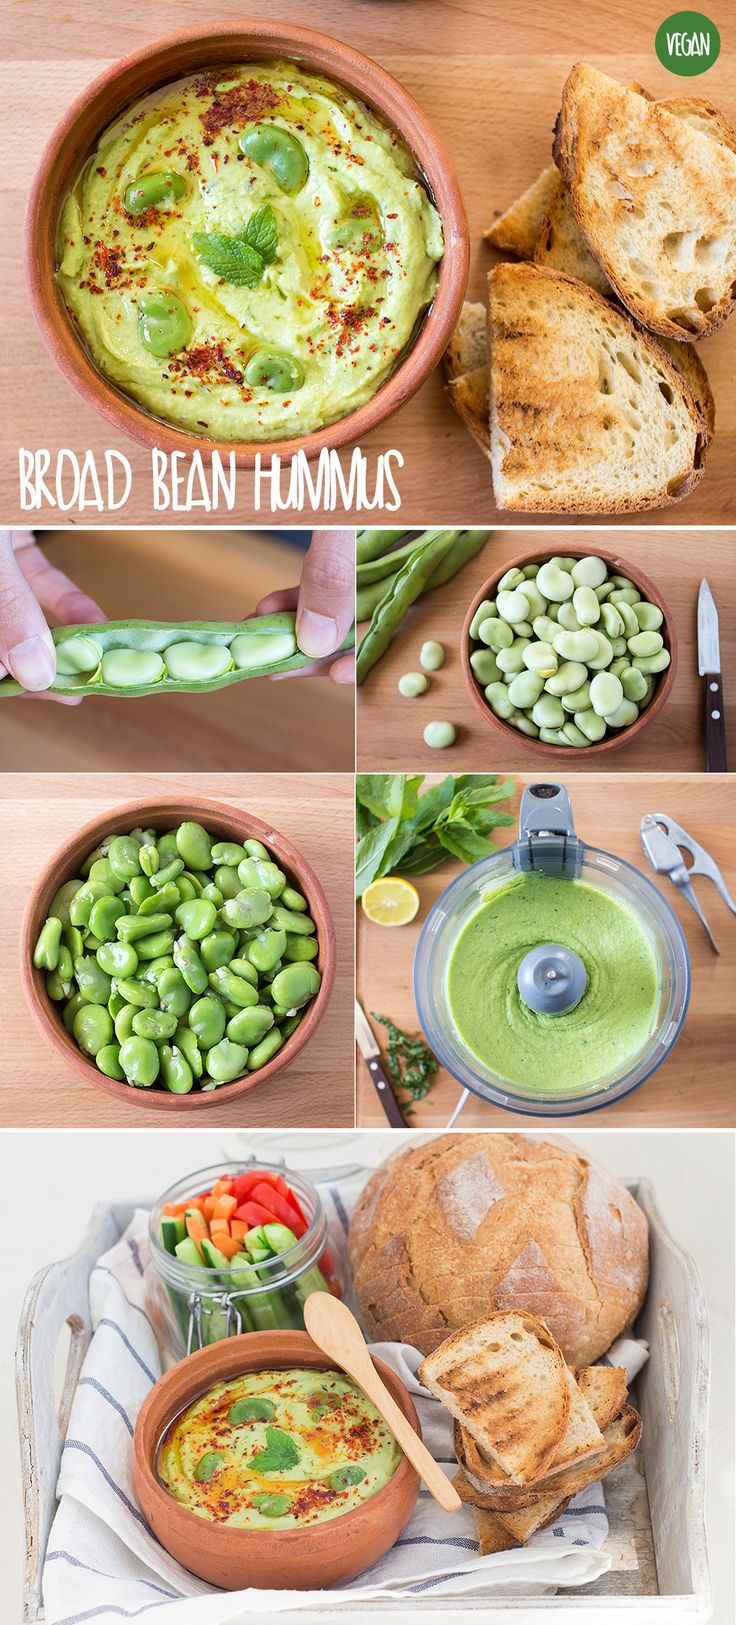 Delicious bread bean hummus. It's creamy, bright green and tastes super fresh…